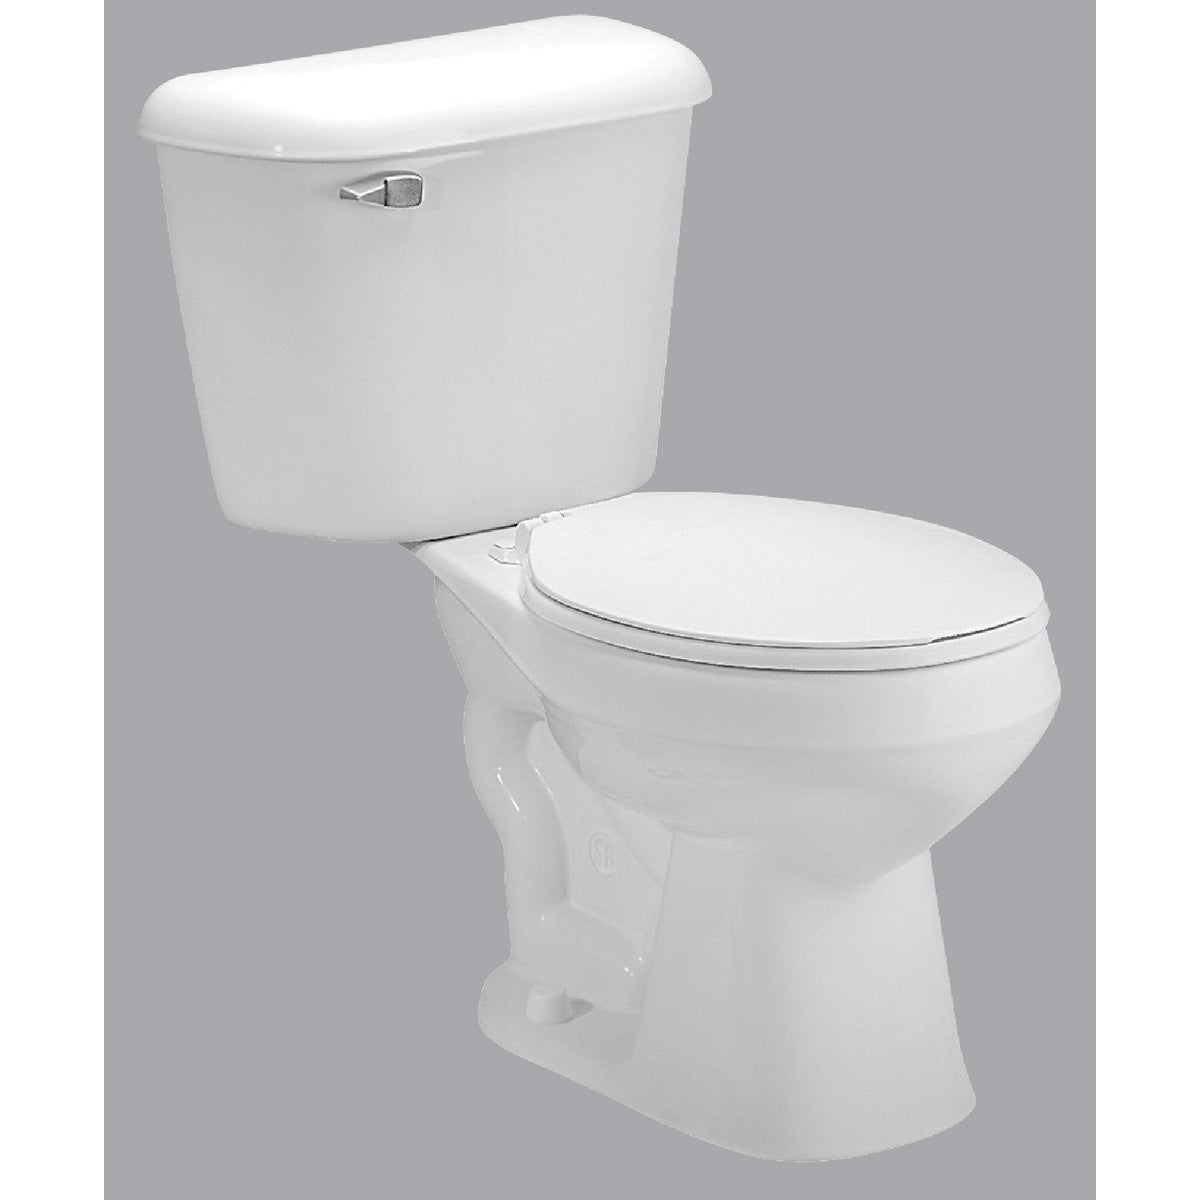 WHT RF TOILET PRO FIT 1 - 013010017 by Mansfield Plumbing